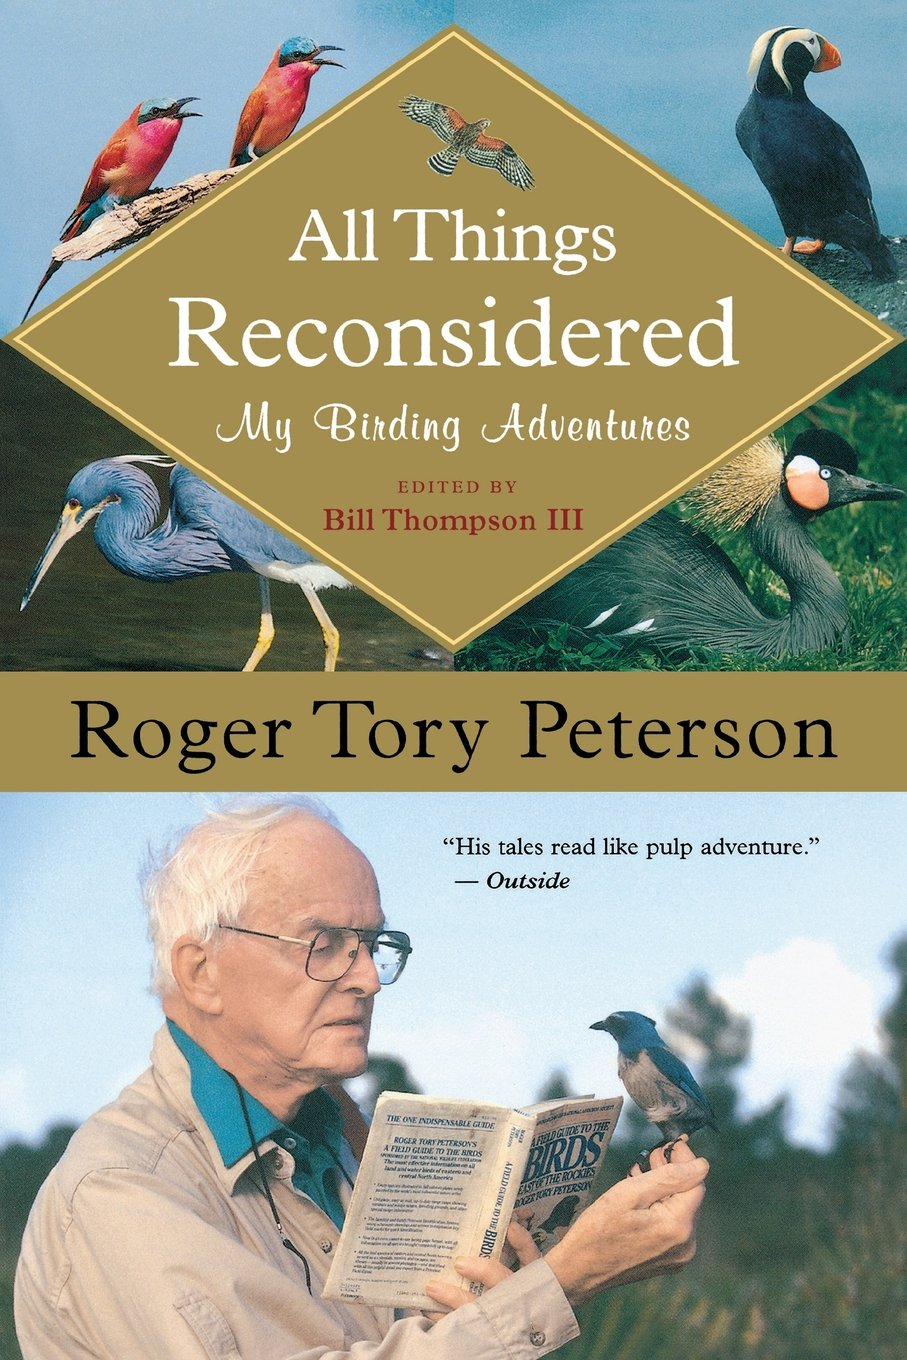 All Things Reconsidered: My Birding Adventures: Roger Tory Peterson, Bill  Thompson III: 9780618926152: Amazon.com: Books